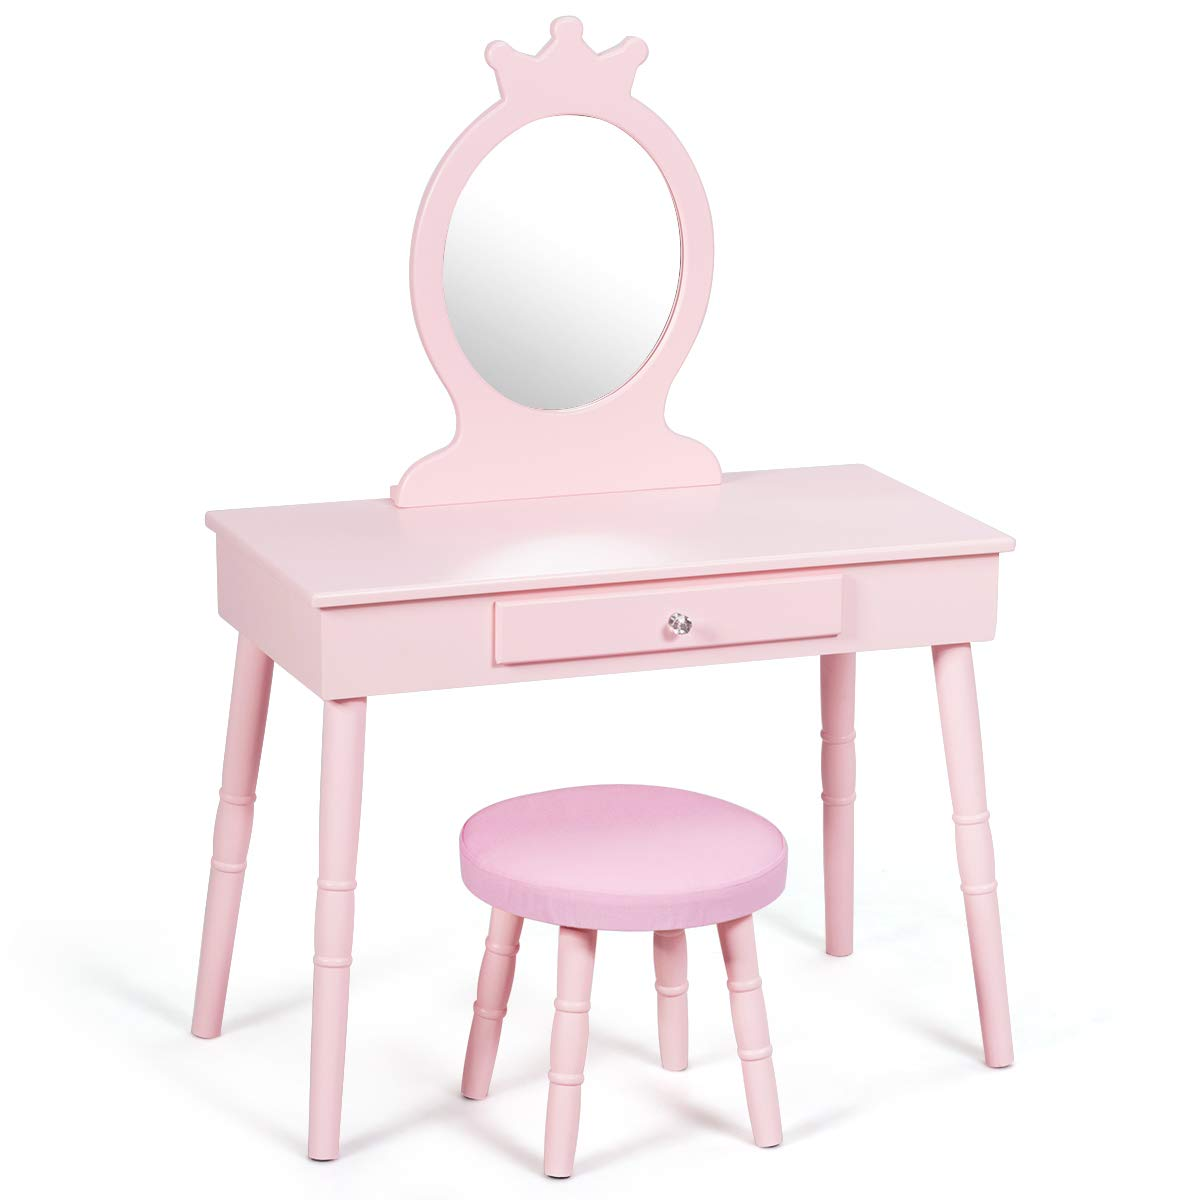 GOFLAME Kids Vanity Set, Princess Dressing Table Set, Wooden Dresser, Little Girls Makeup Table and Stool Set, Pretend Beauty Play Set with Real Mirror, Pull-Out Drawer and Cushioned Stool, Pink by GOFLAME